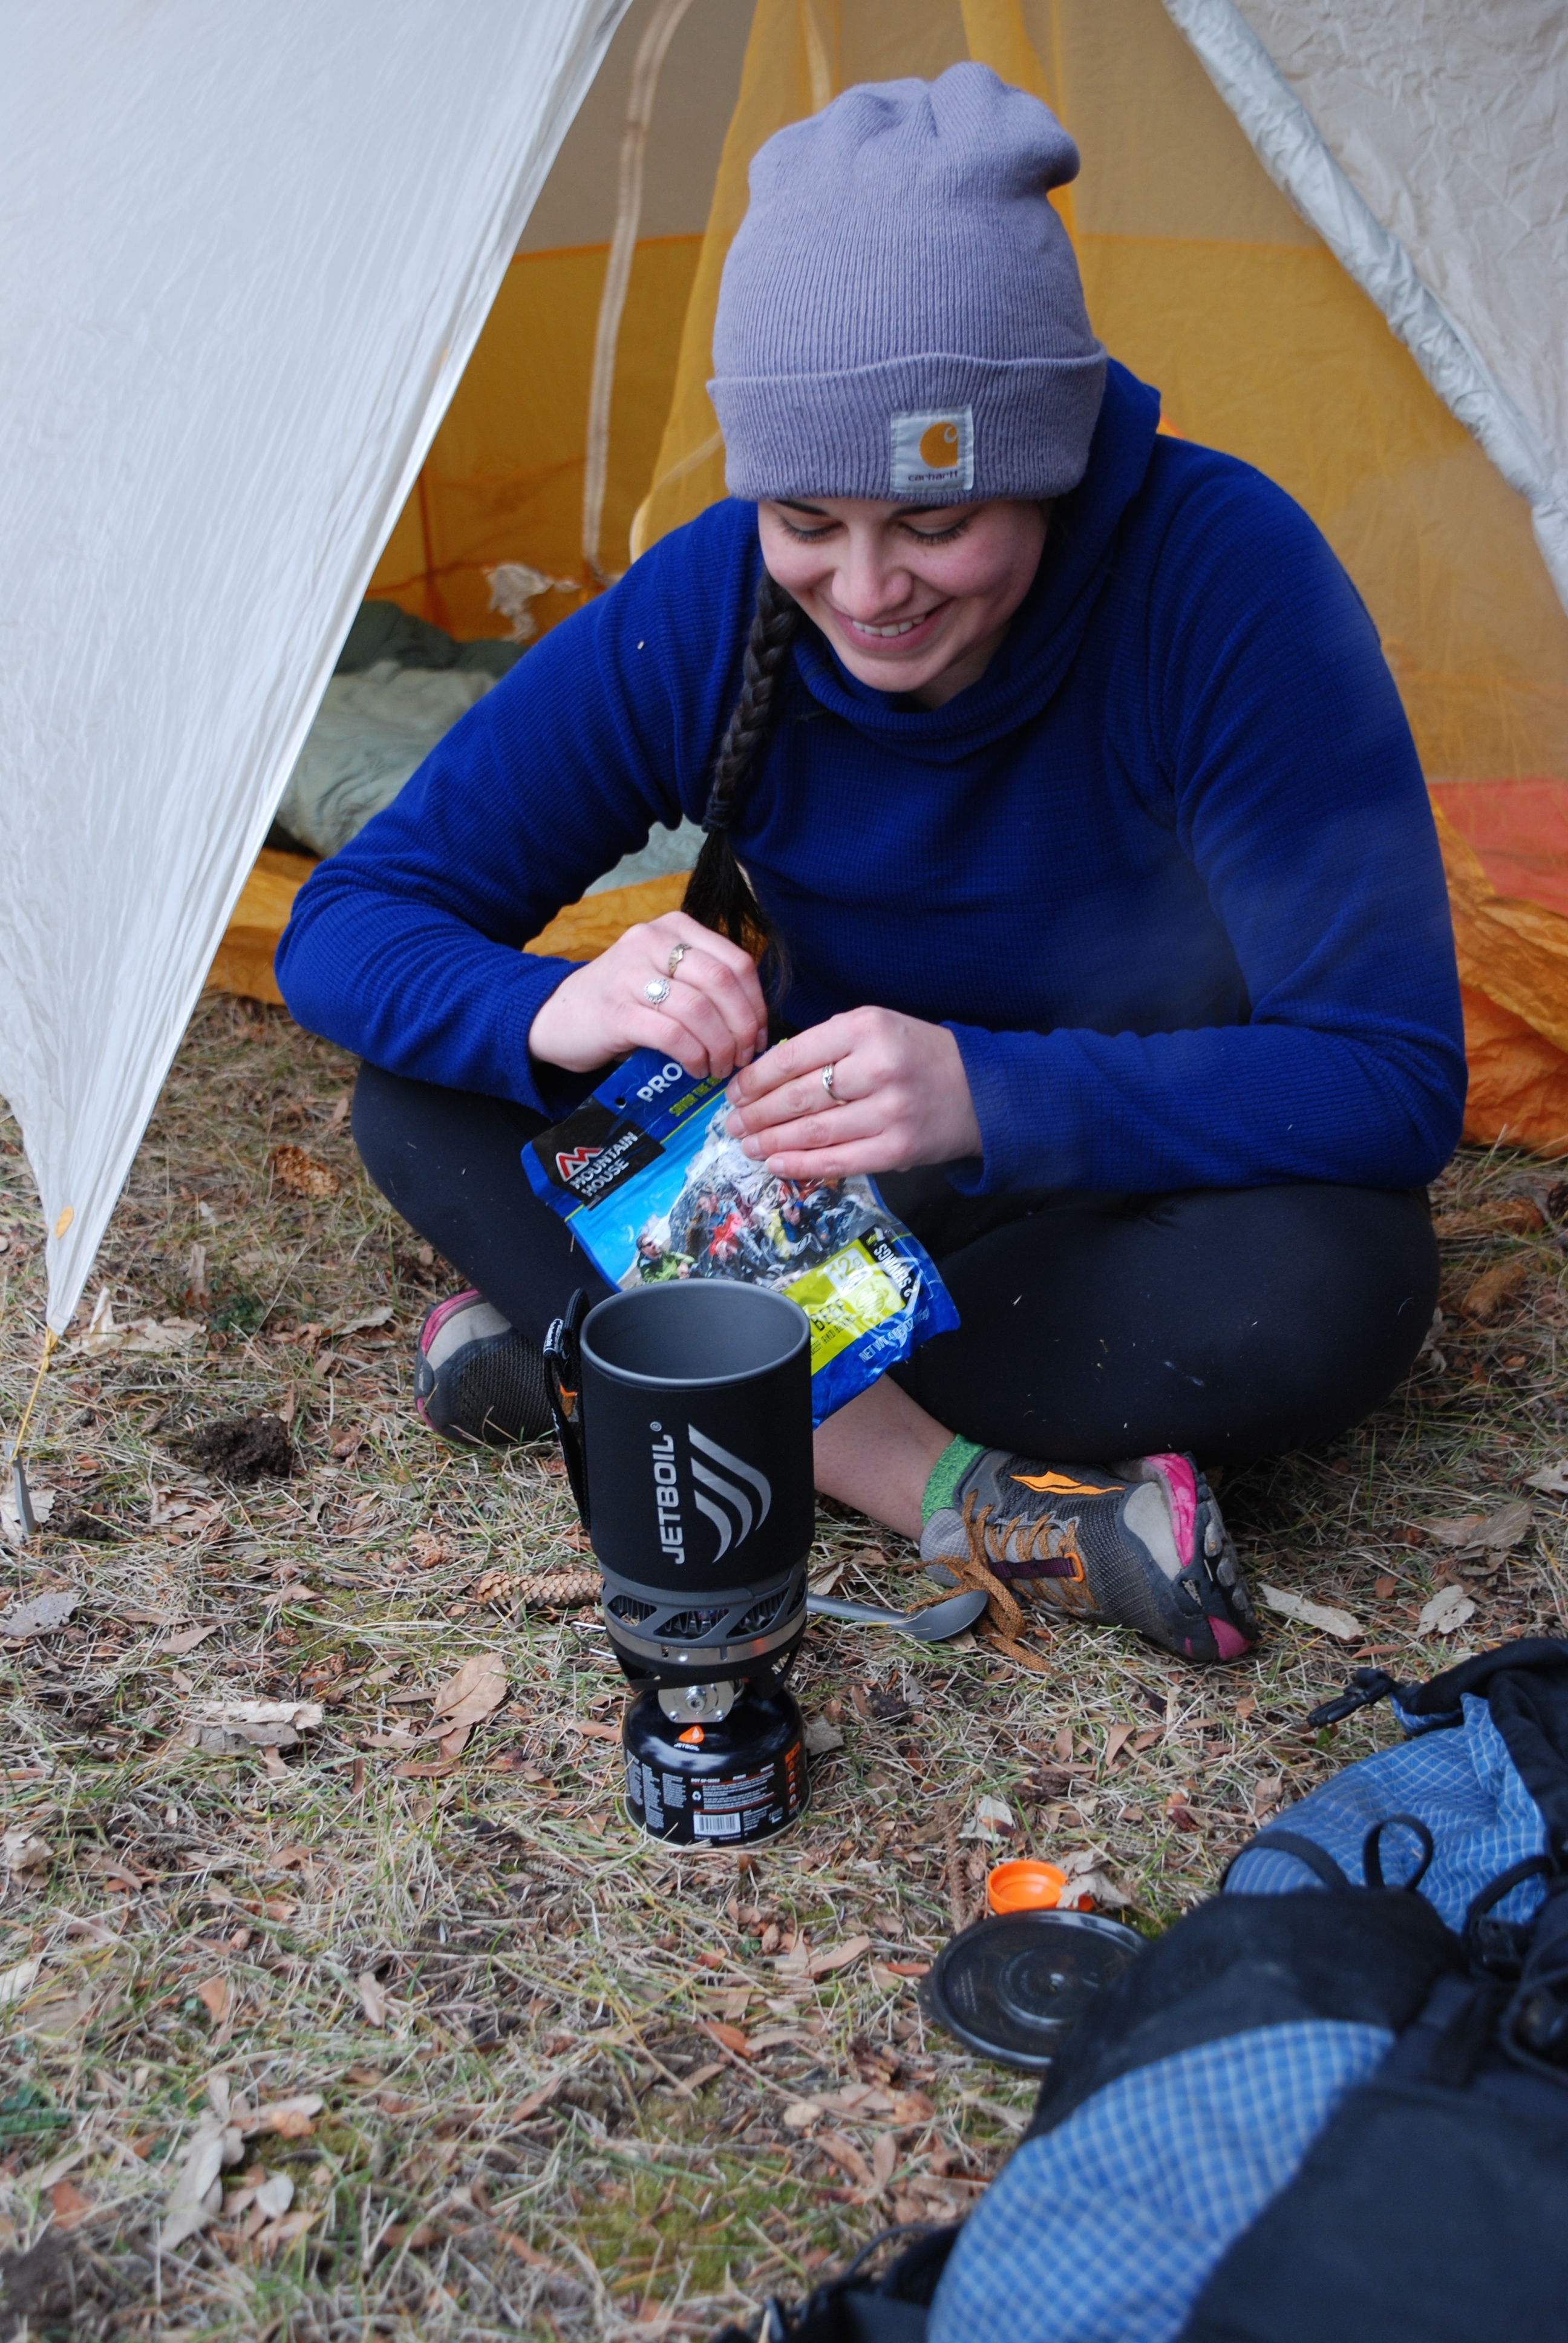 SoulShine making Chili Mac with her JetBoil MicroMo